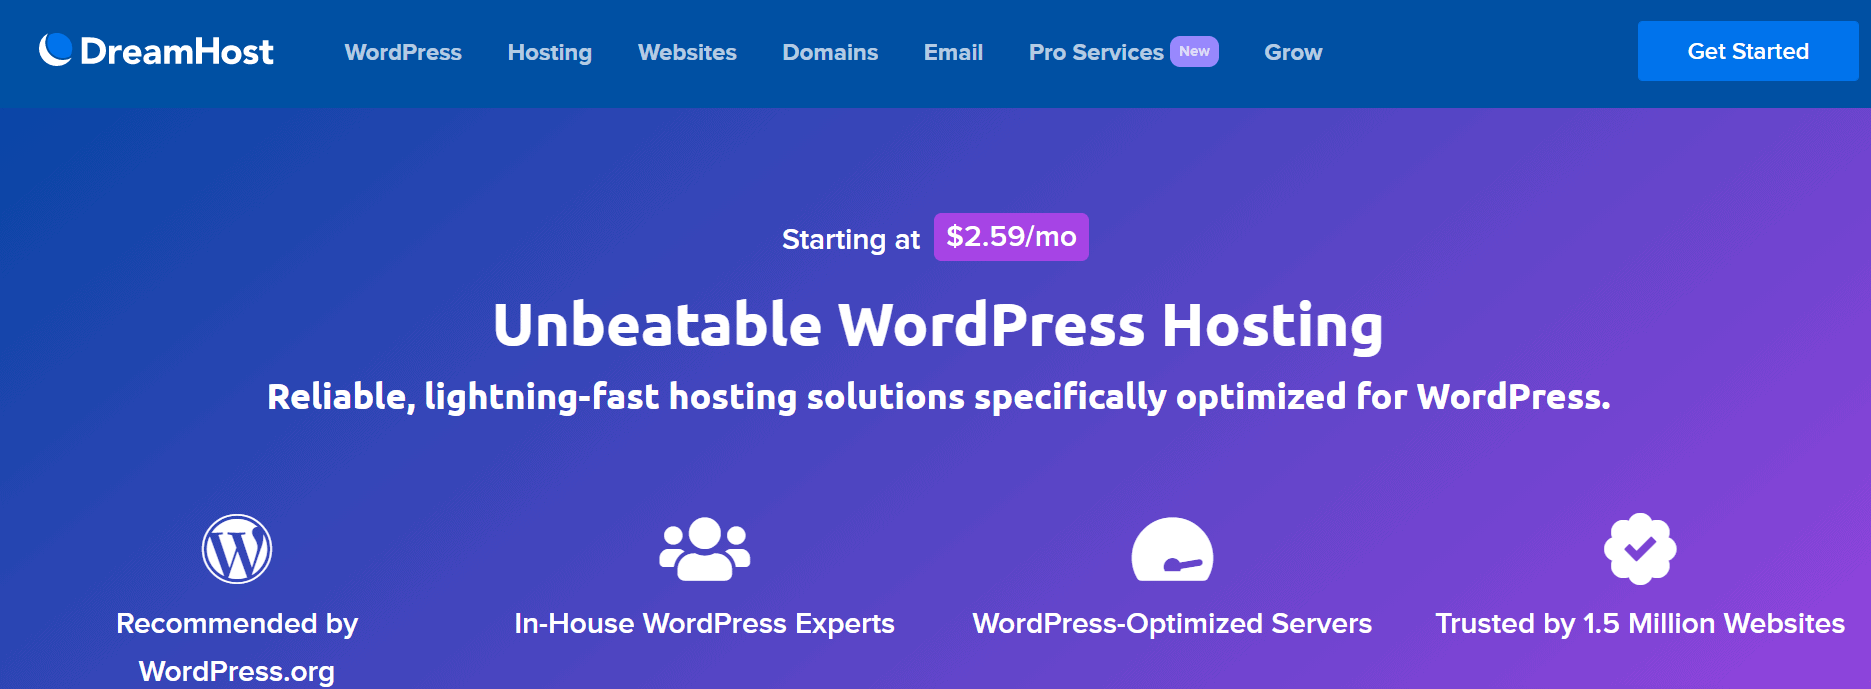 Dreamhost Cheap WordPress Hosting